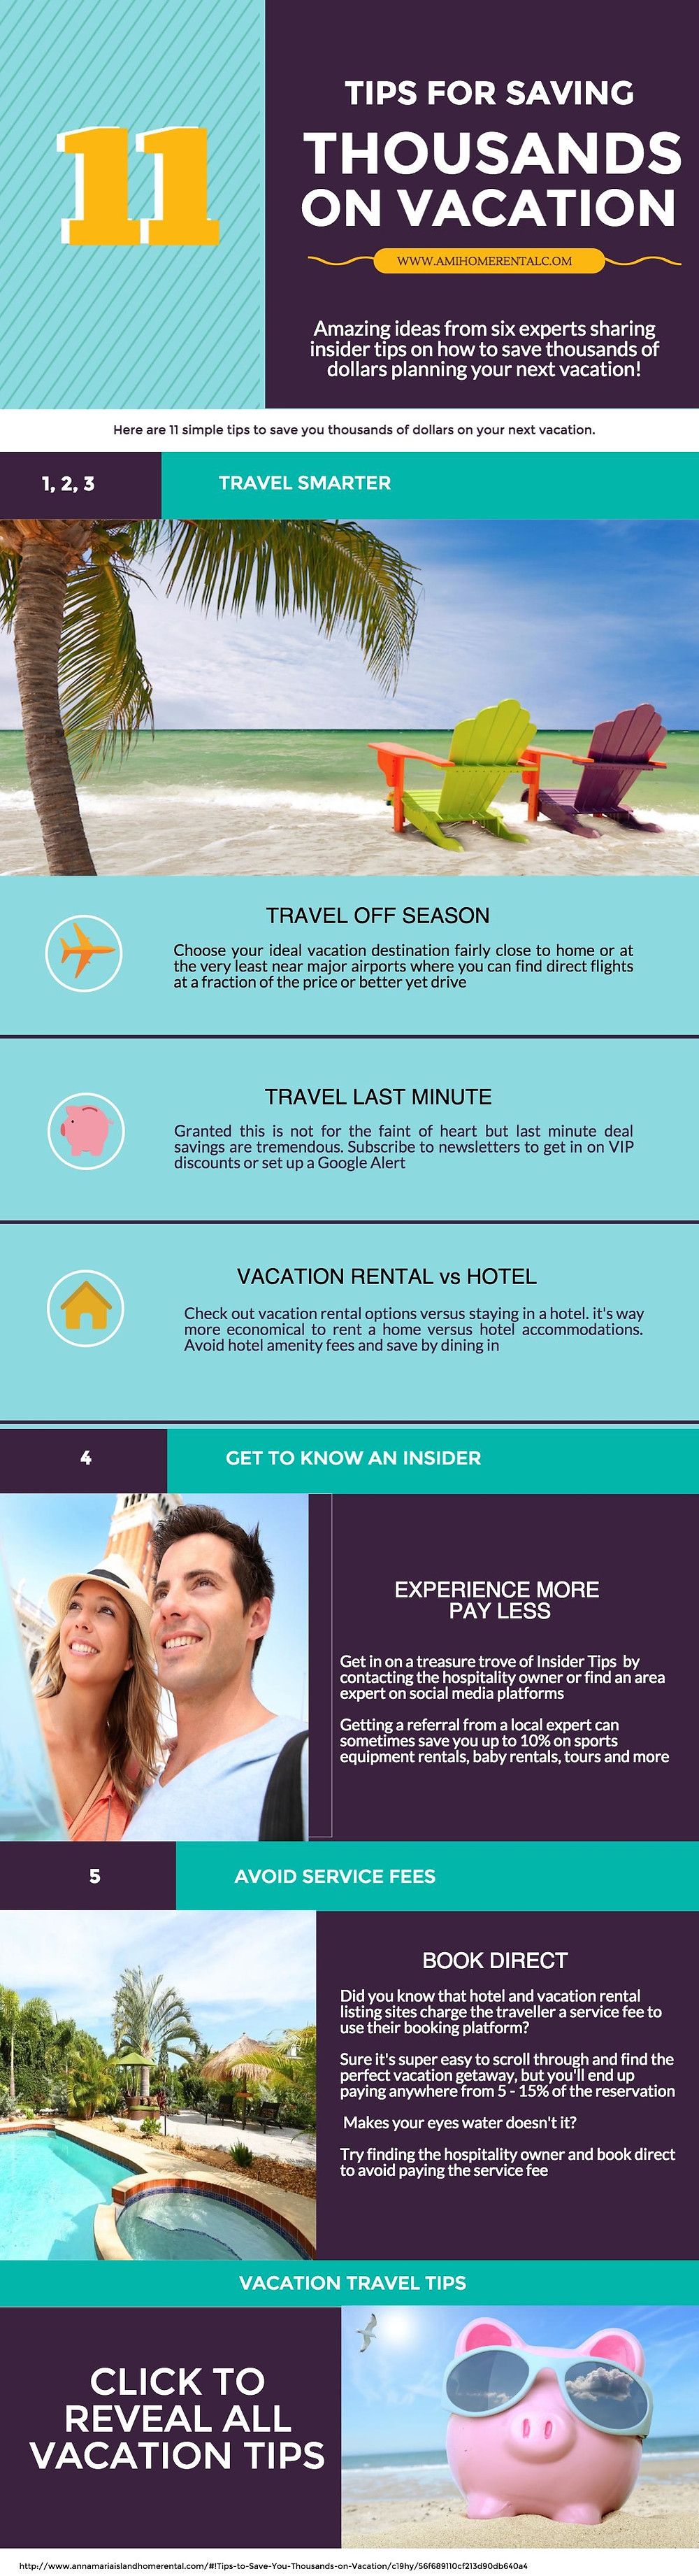 11 Tips to Save Money on Vacation